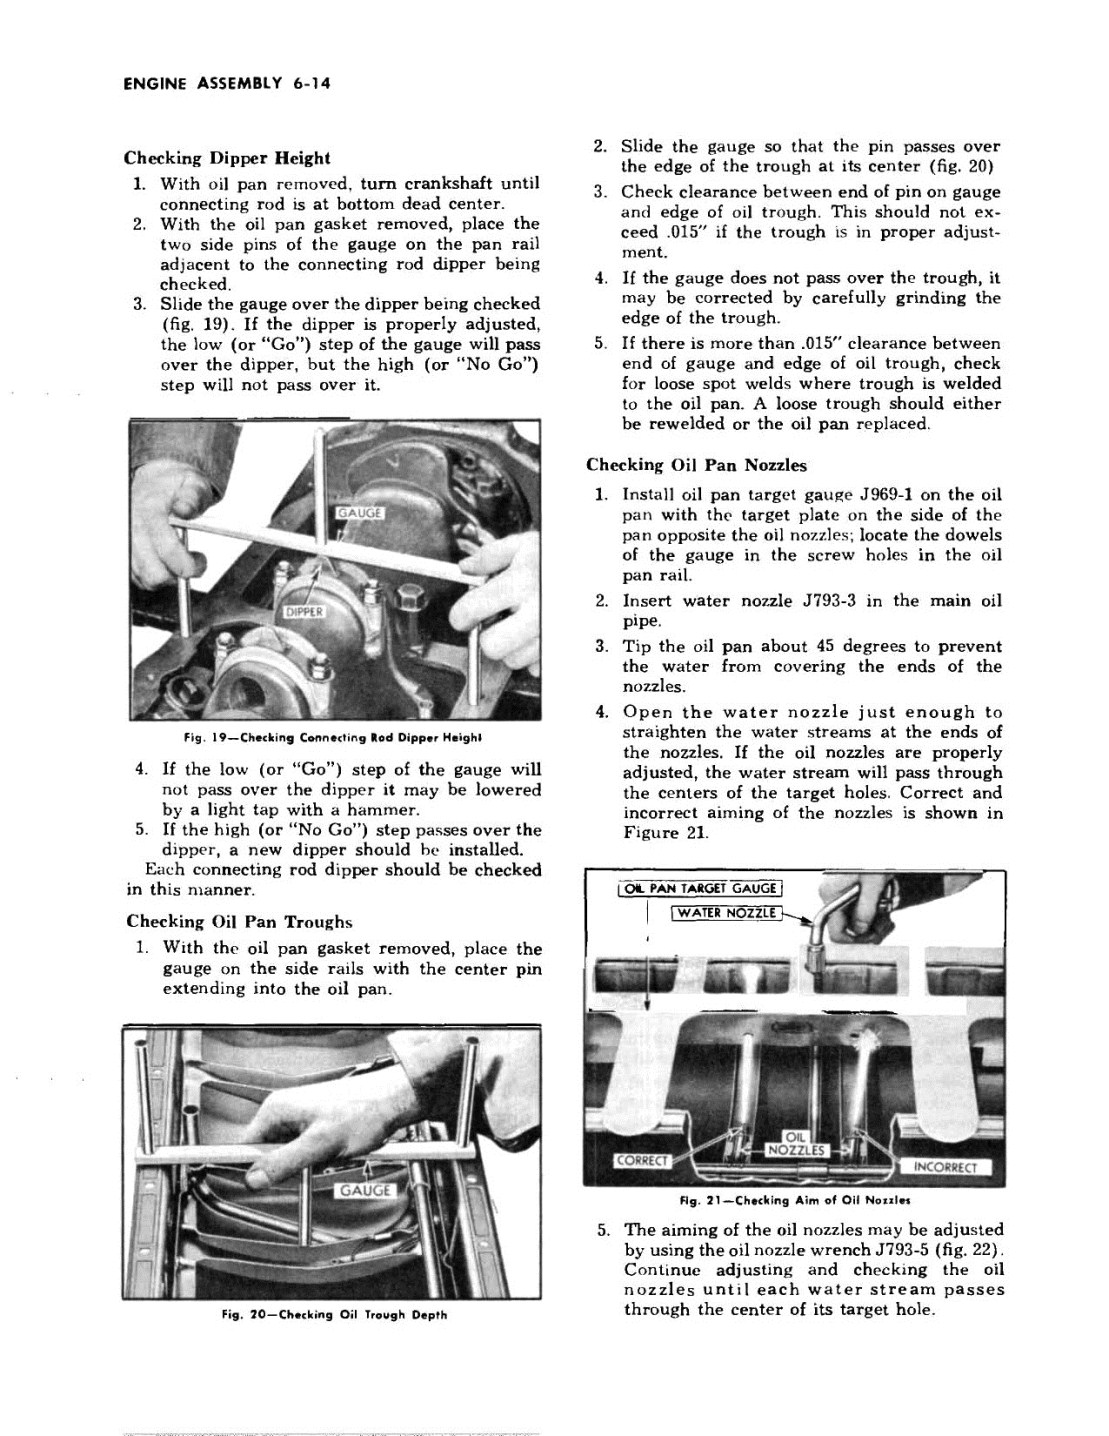 1949 Chevrolet Car Owners Manual